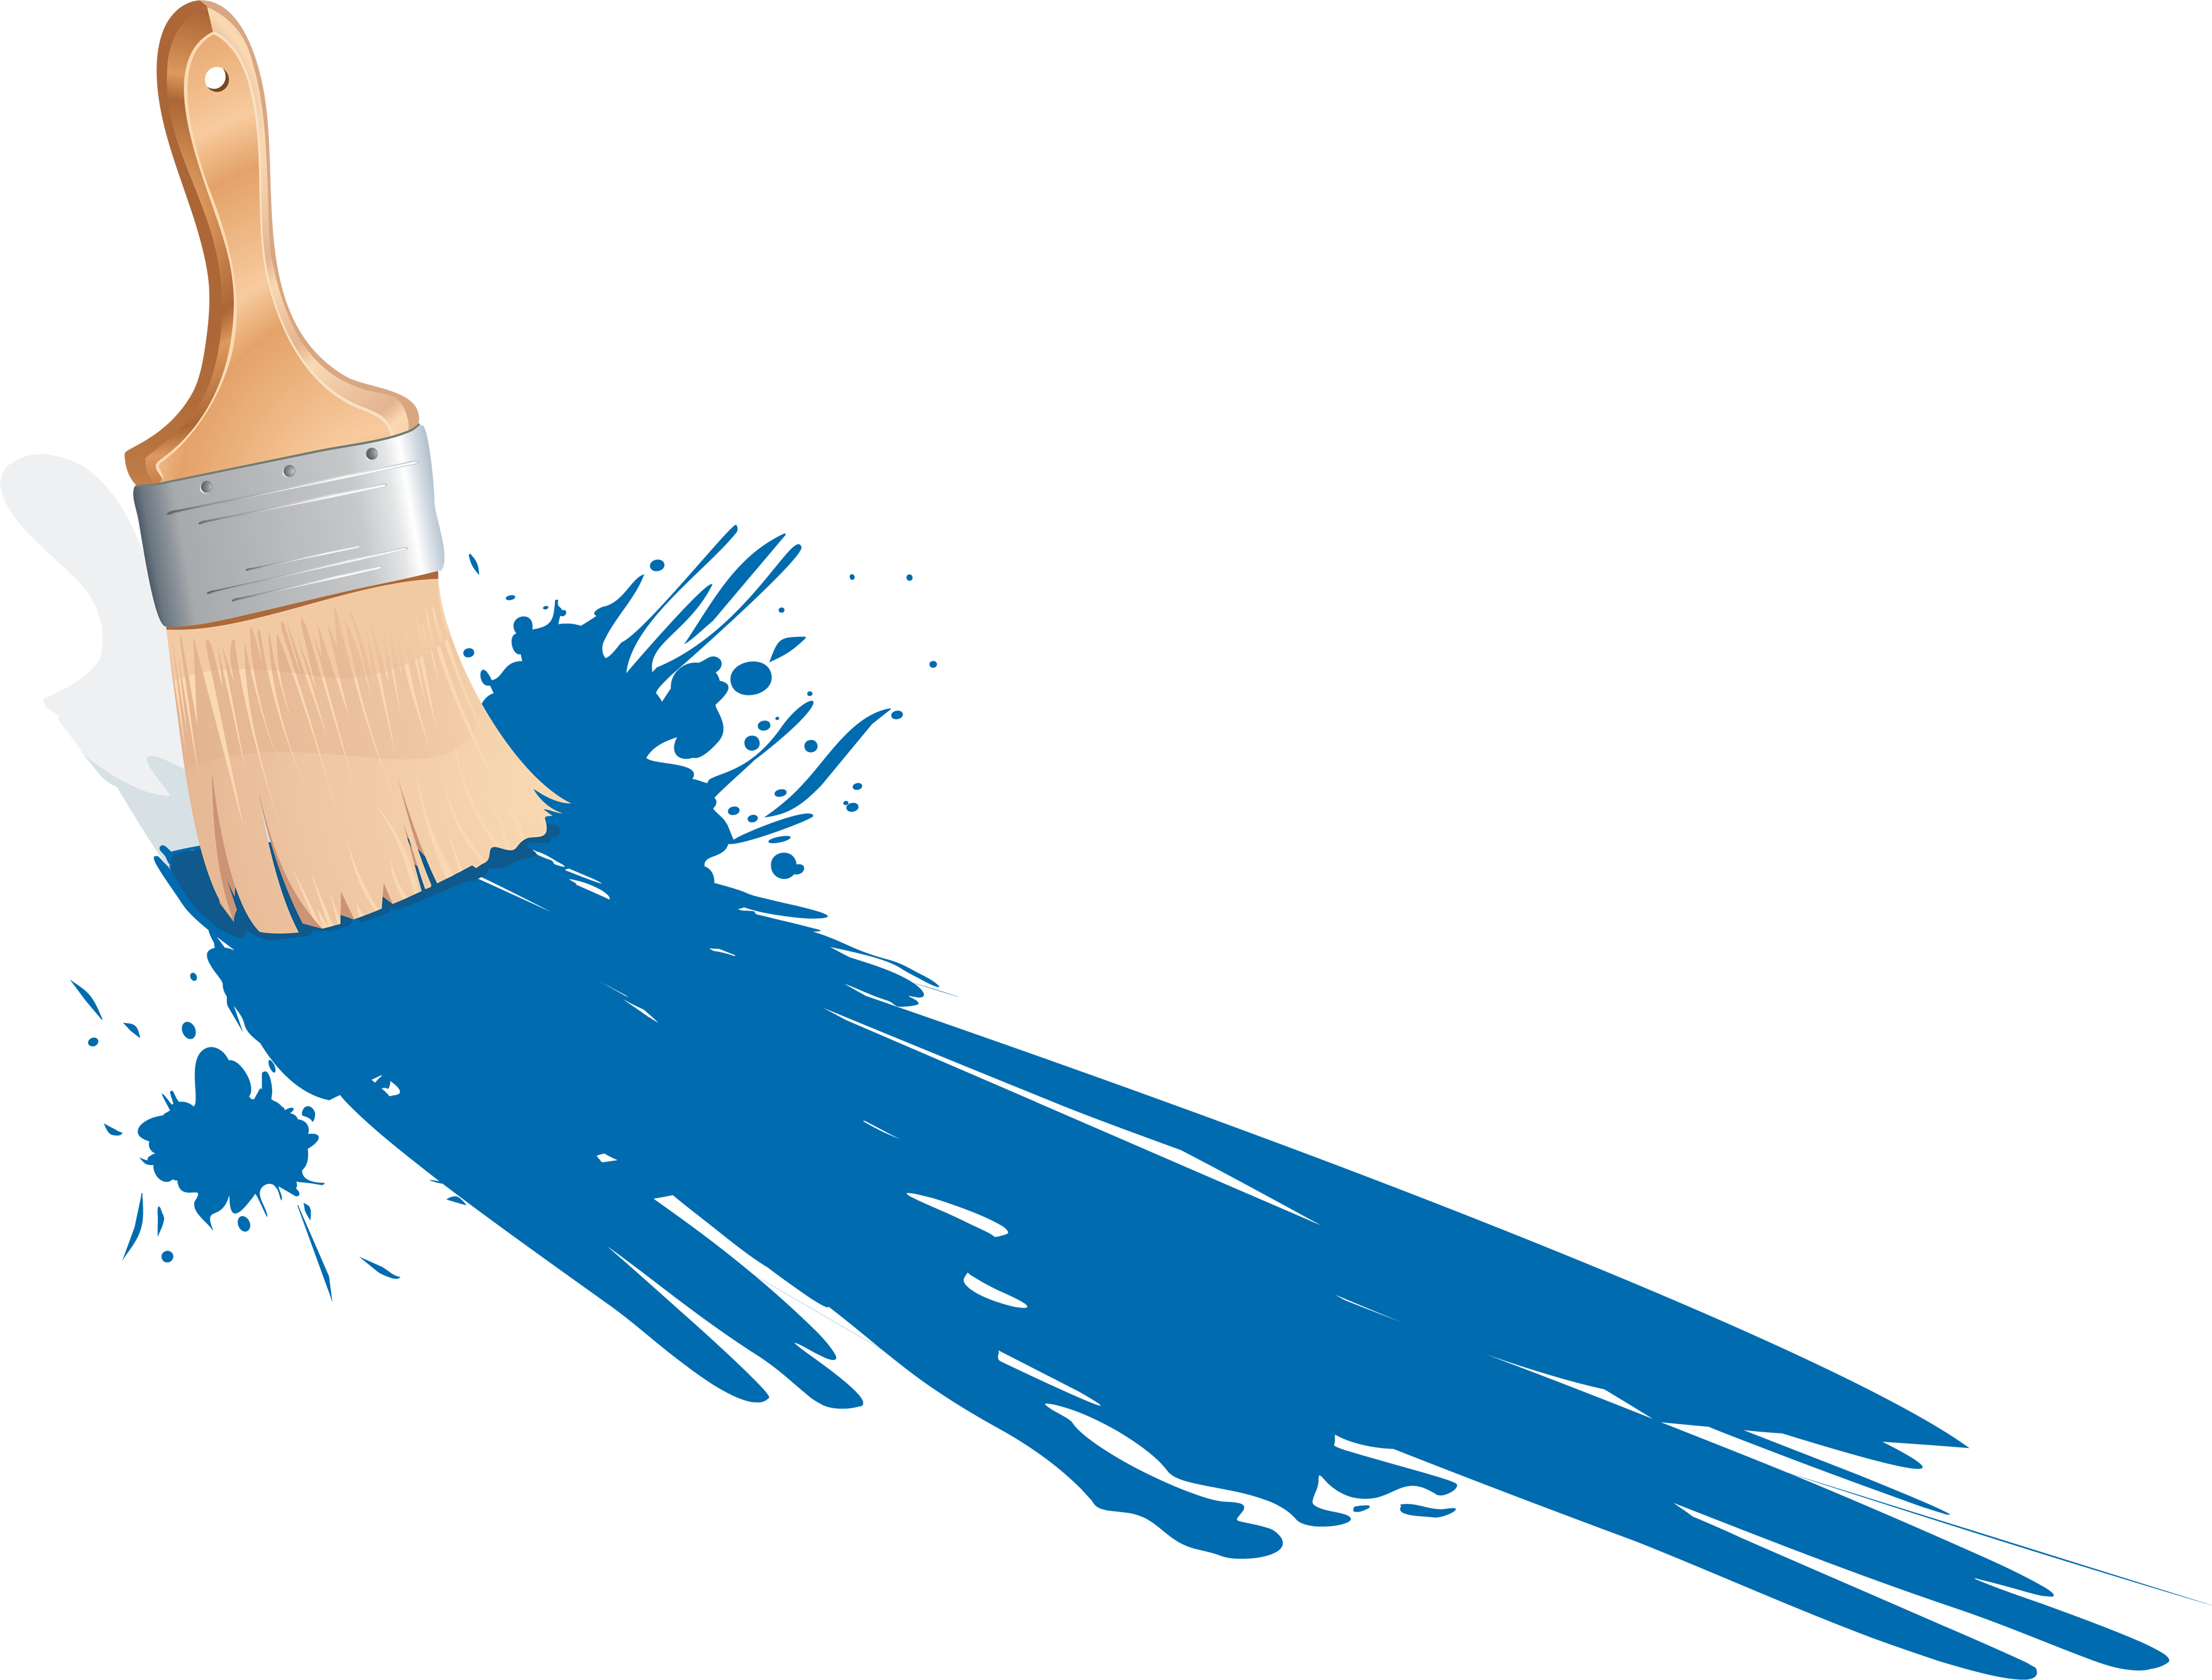 Paint Brush Png Image Png Image - Paint Brush, Transparent background PNG HD thumbnail